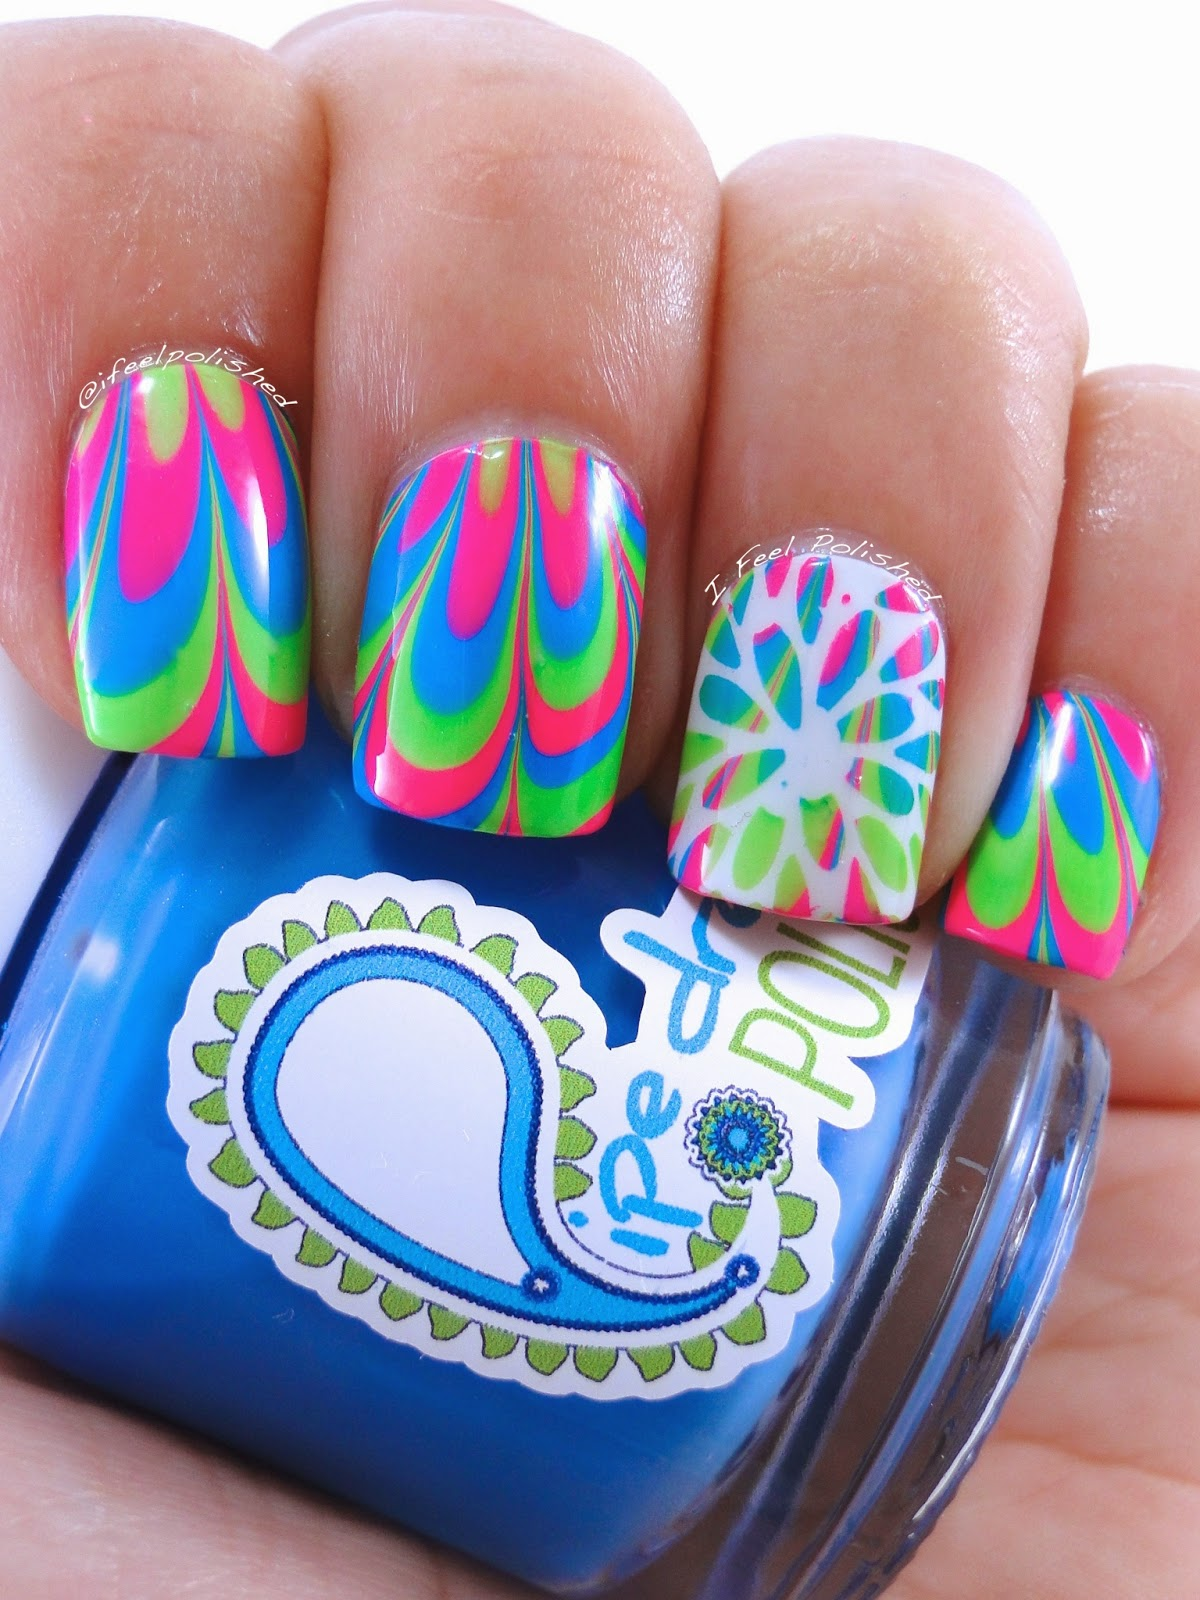 I Feel Polished!: Neon Mum Water Marble